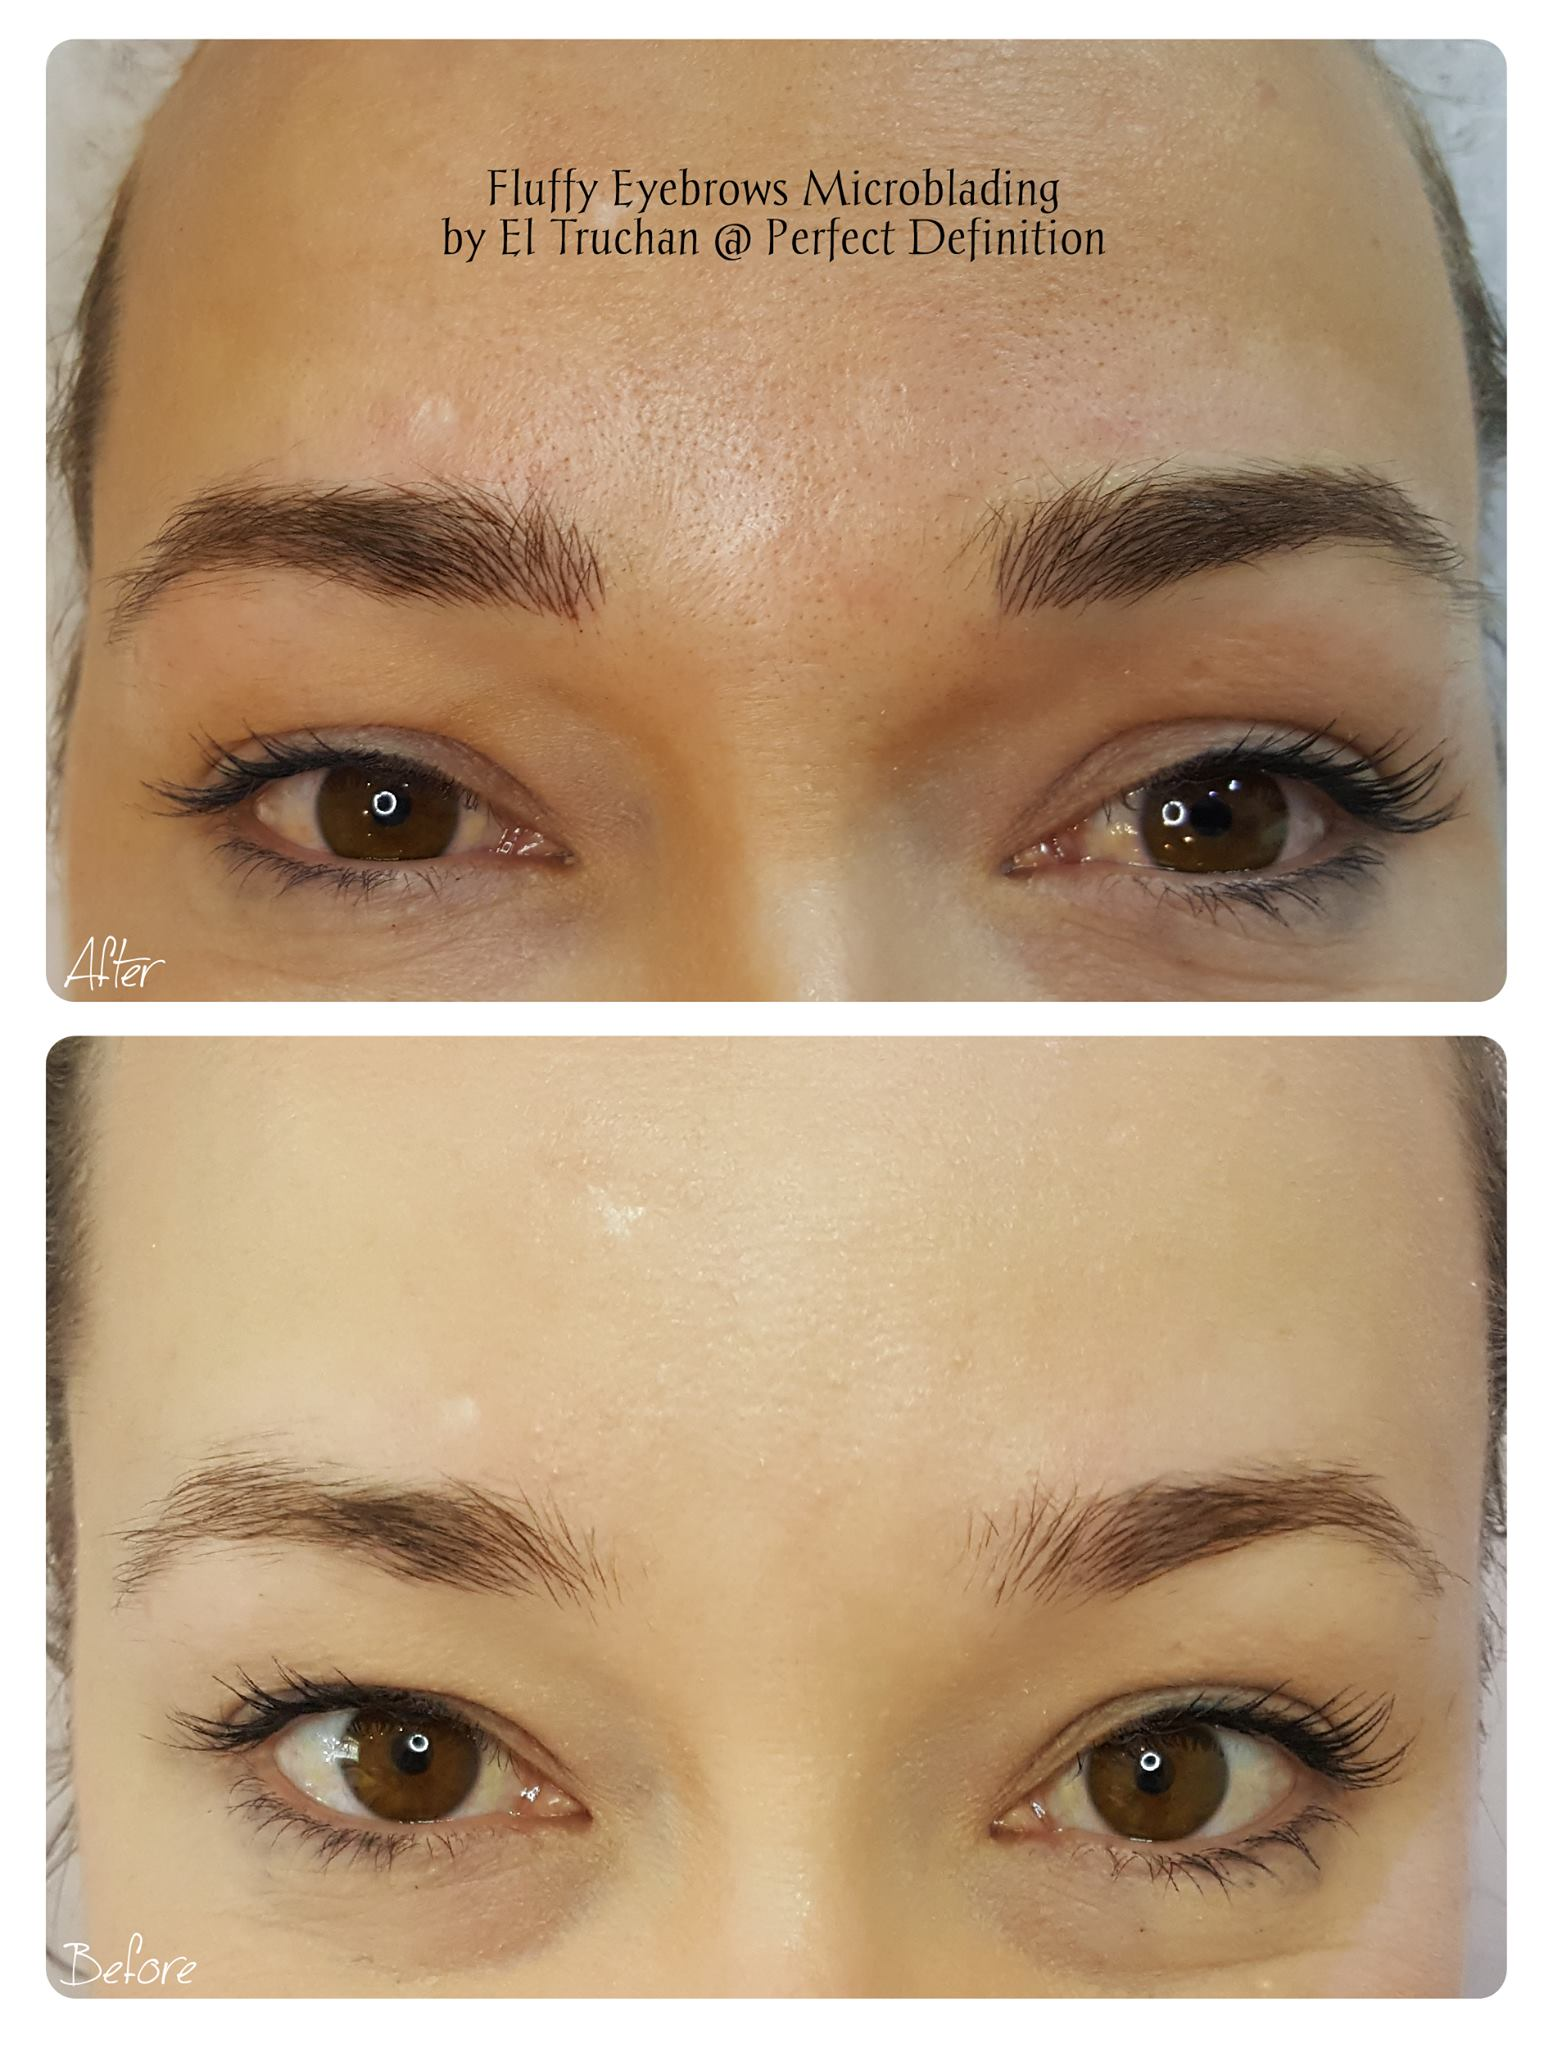 Fluffy Eyebrows Microblading by El Truch